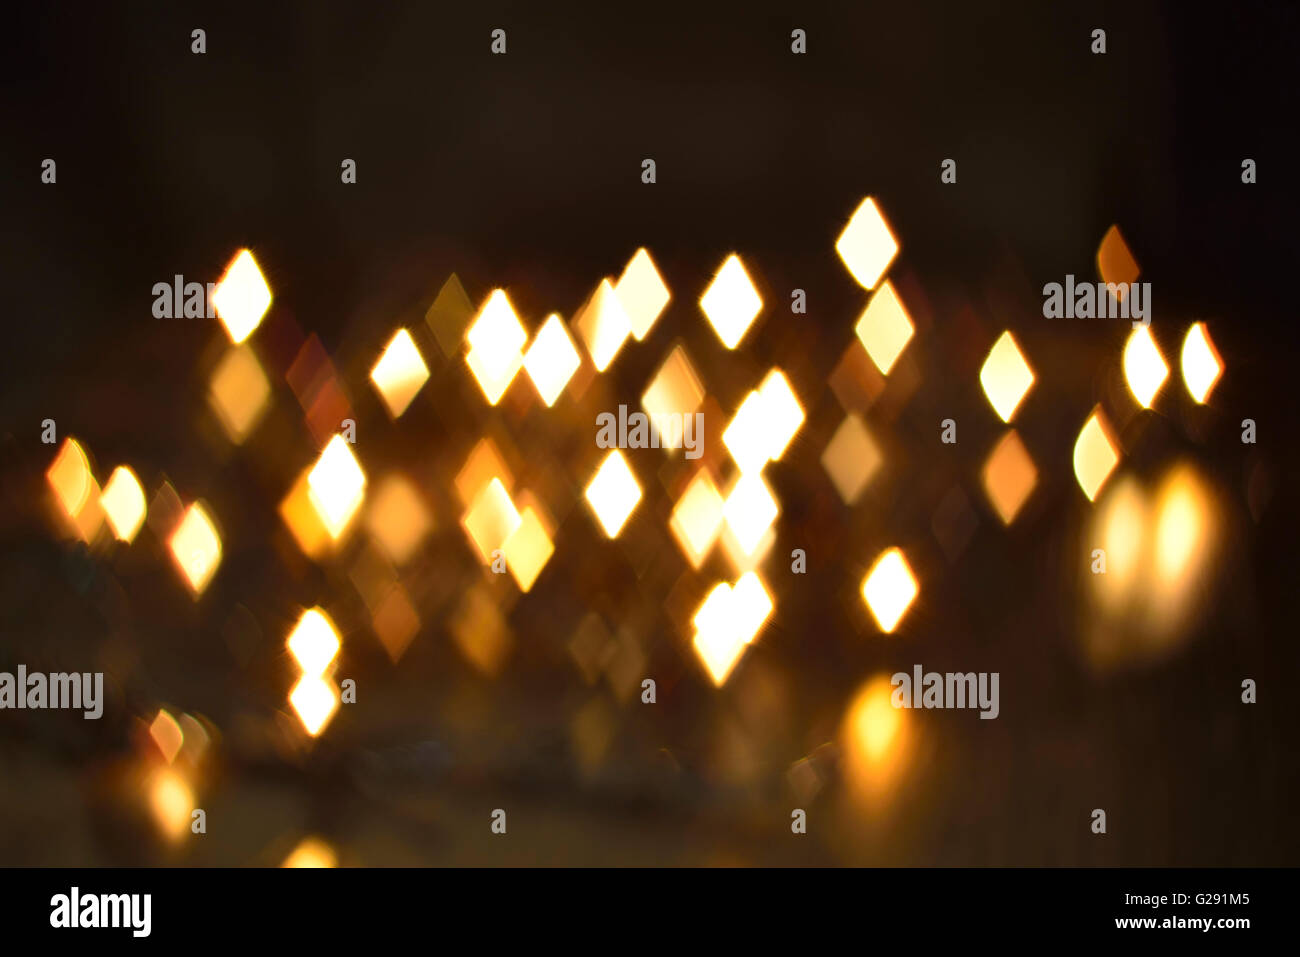 luminous rhombus flying in darkness abstract blur background - Stock Image